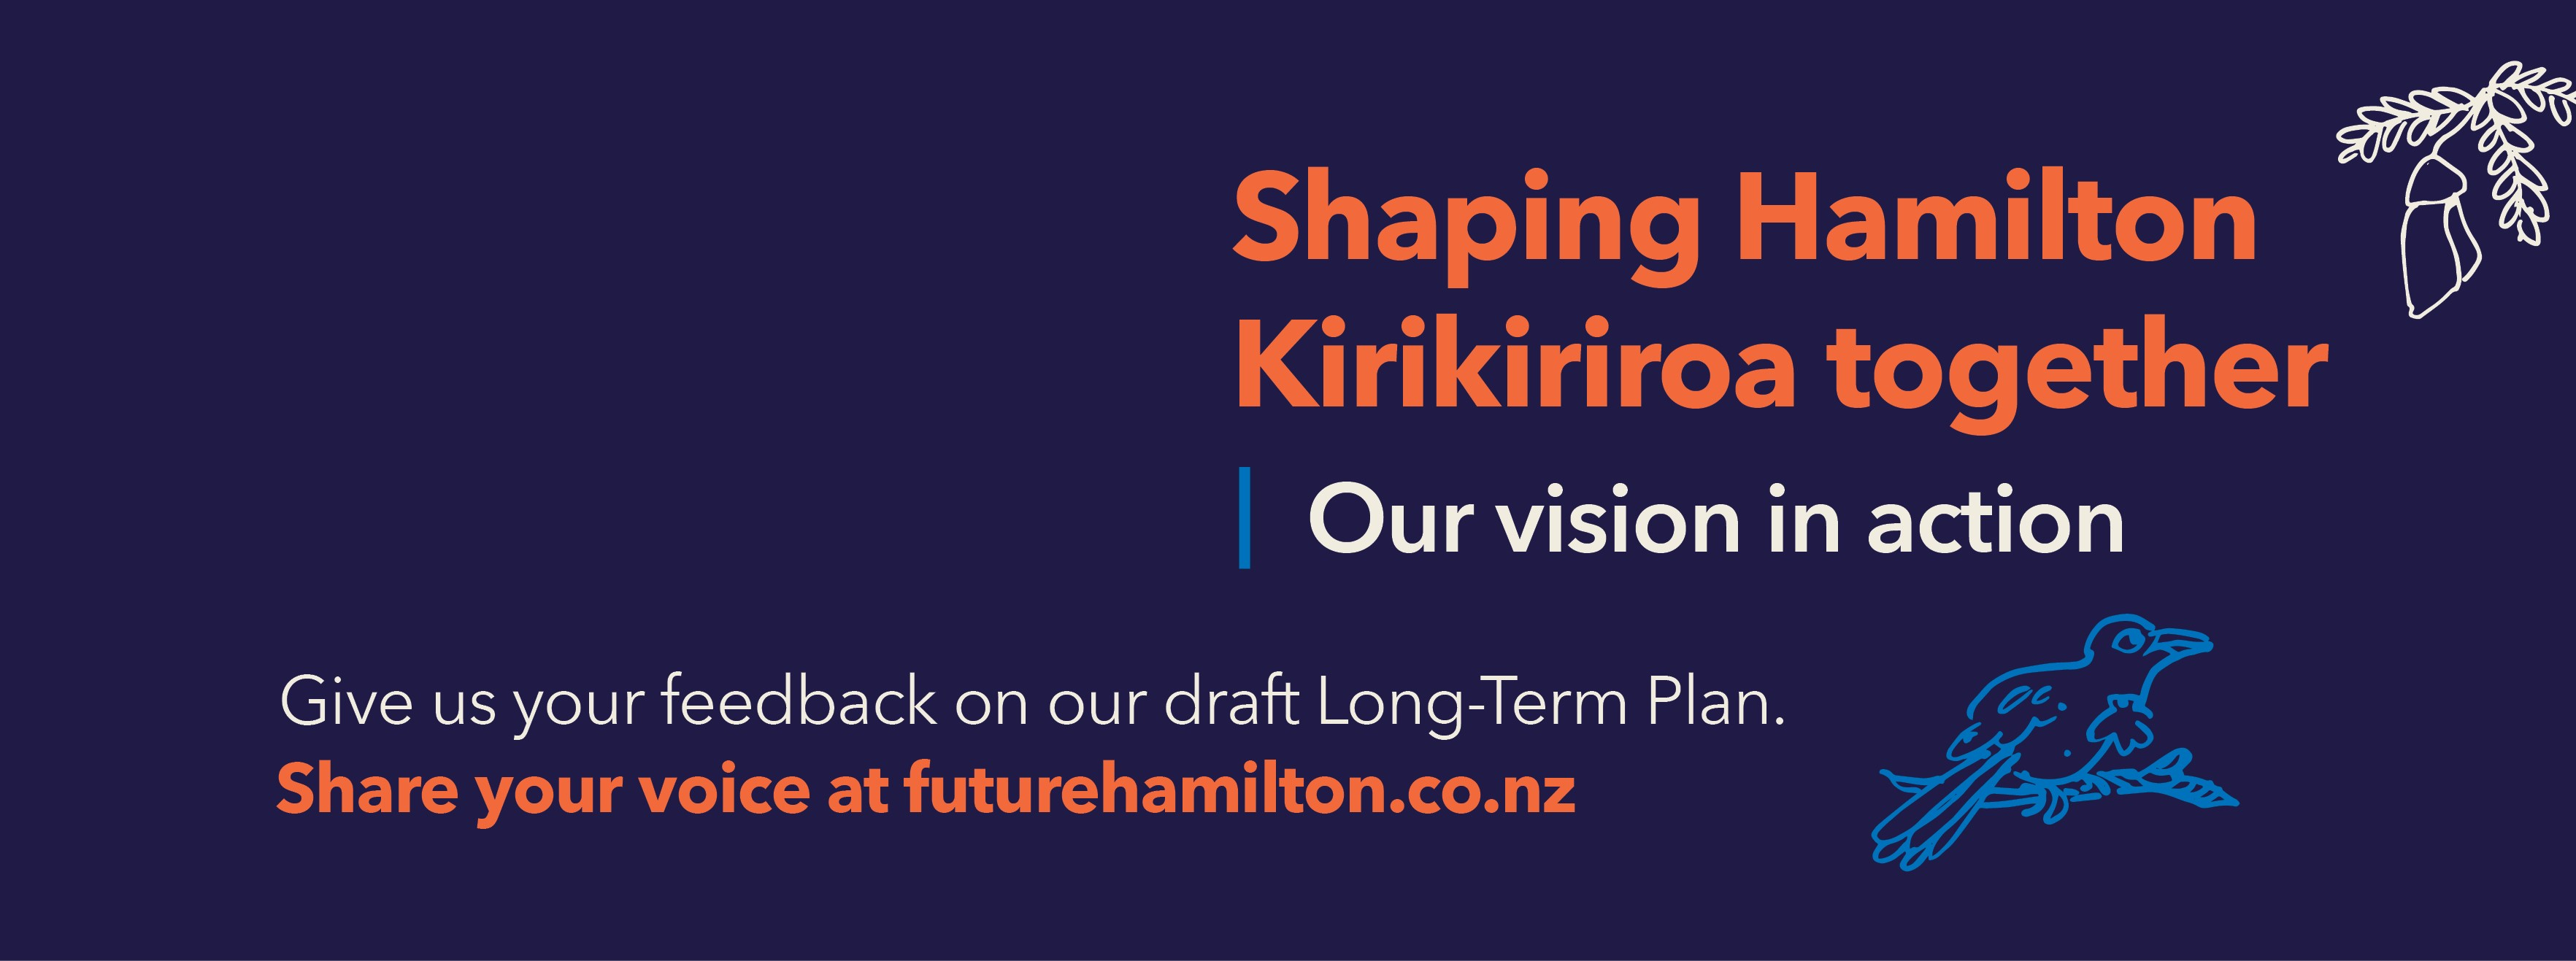 Shaping Hamilton Kirikiriroa together | Our vision in action